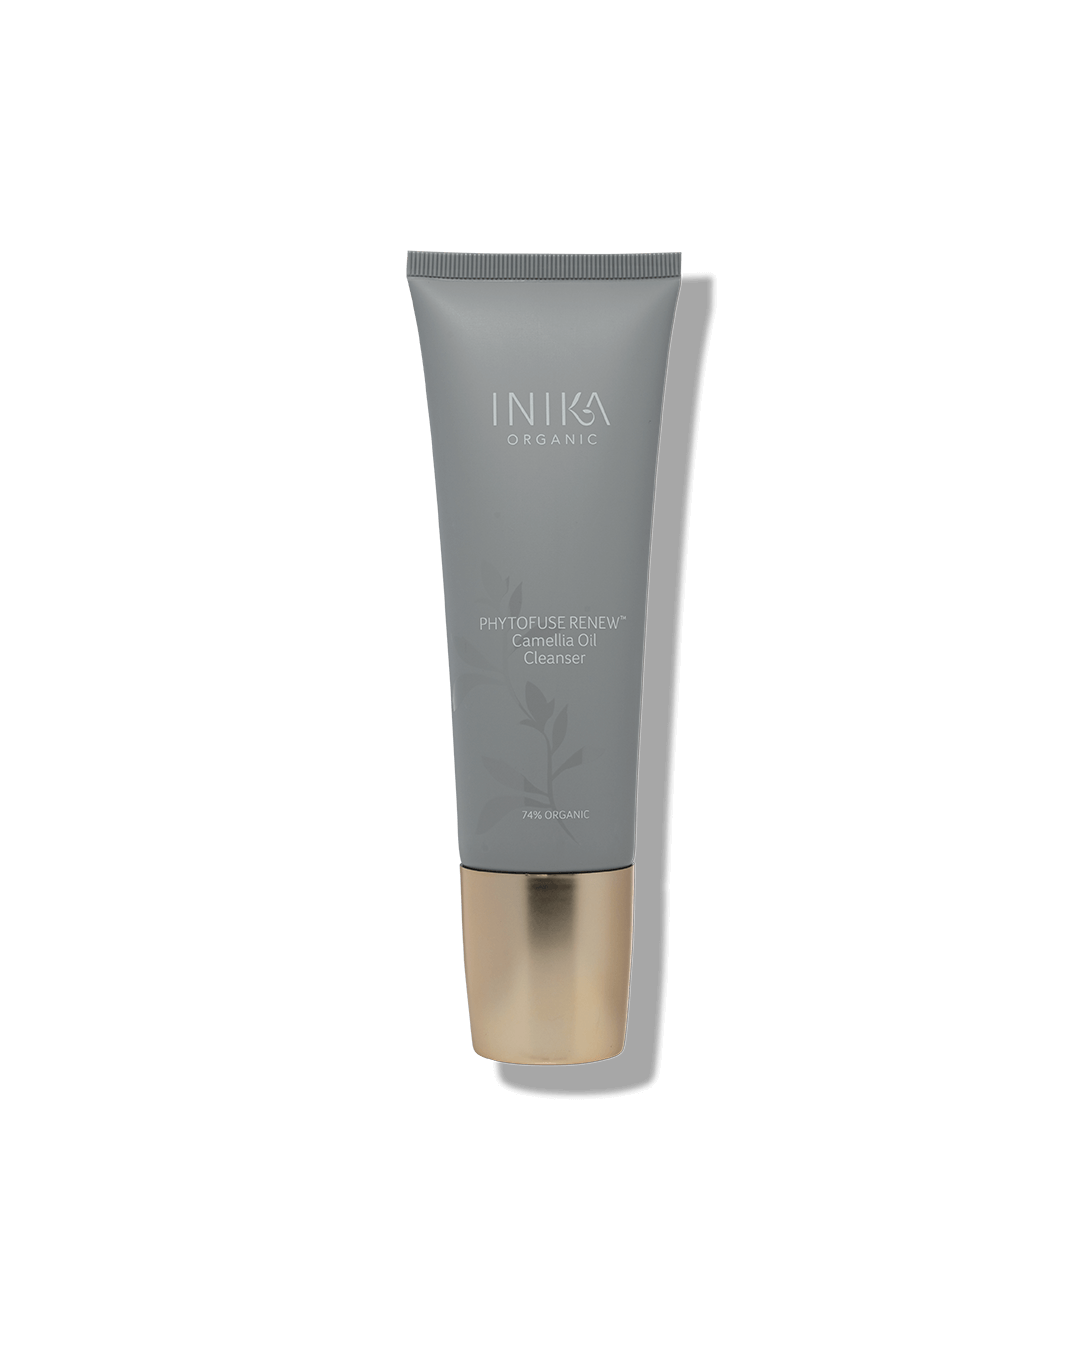 Phytofuse Renew Camellia Oil Cleanser